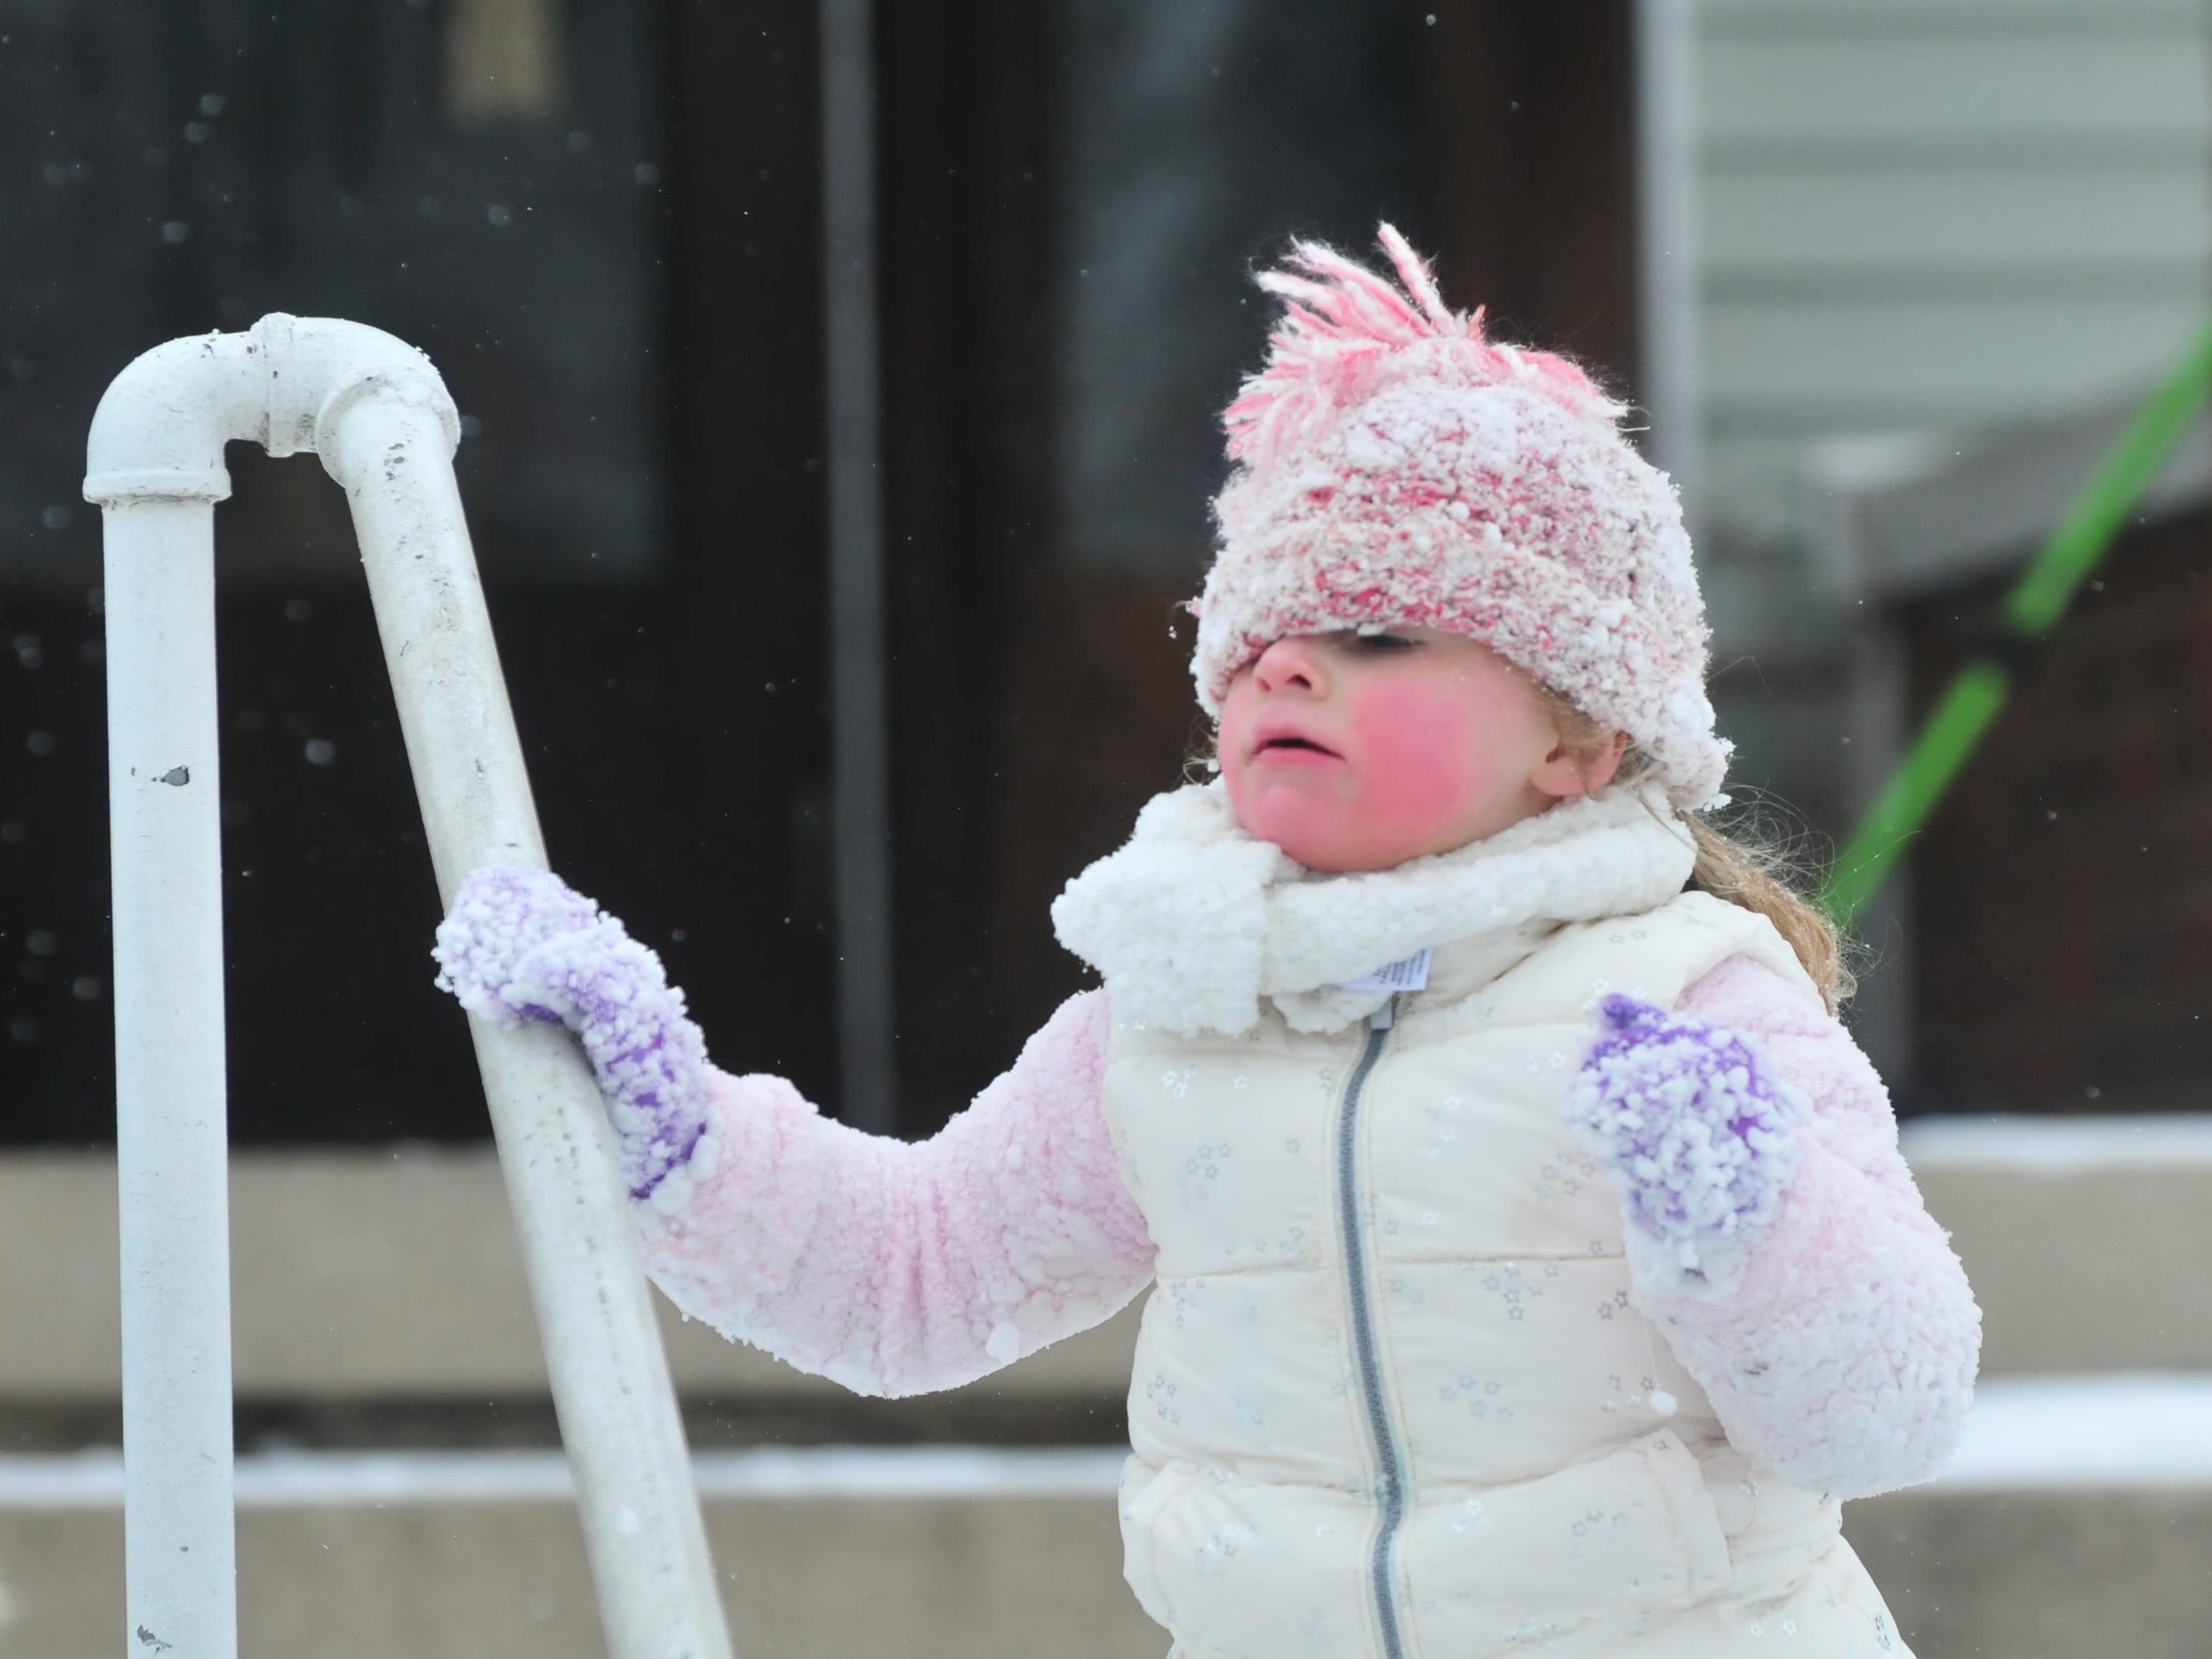 Miah France peers from beneath a snow-covered hat Friday. She was outside with her mom, Laurie Wilson, and cousin Kyla France.